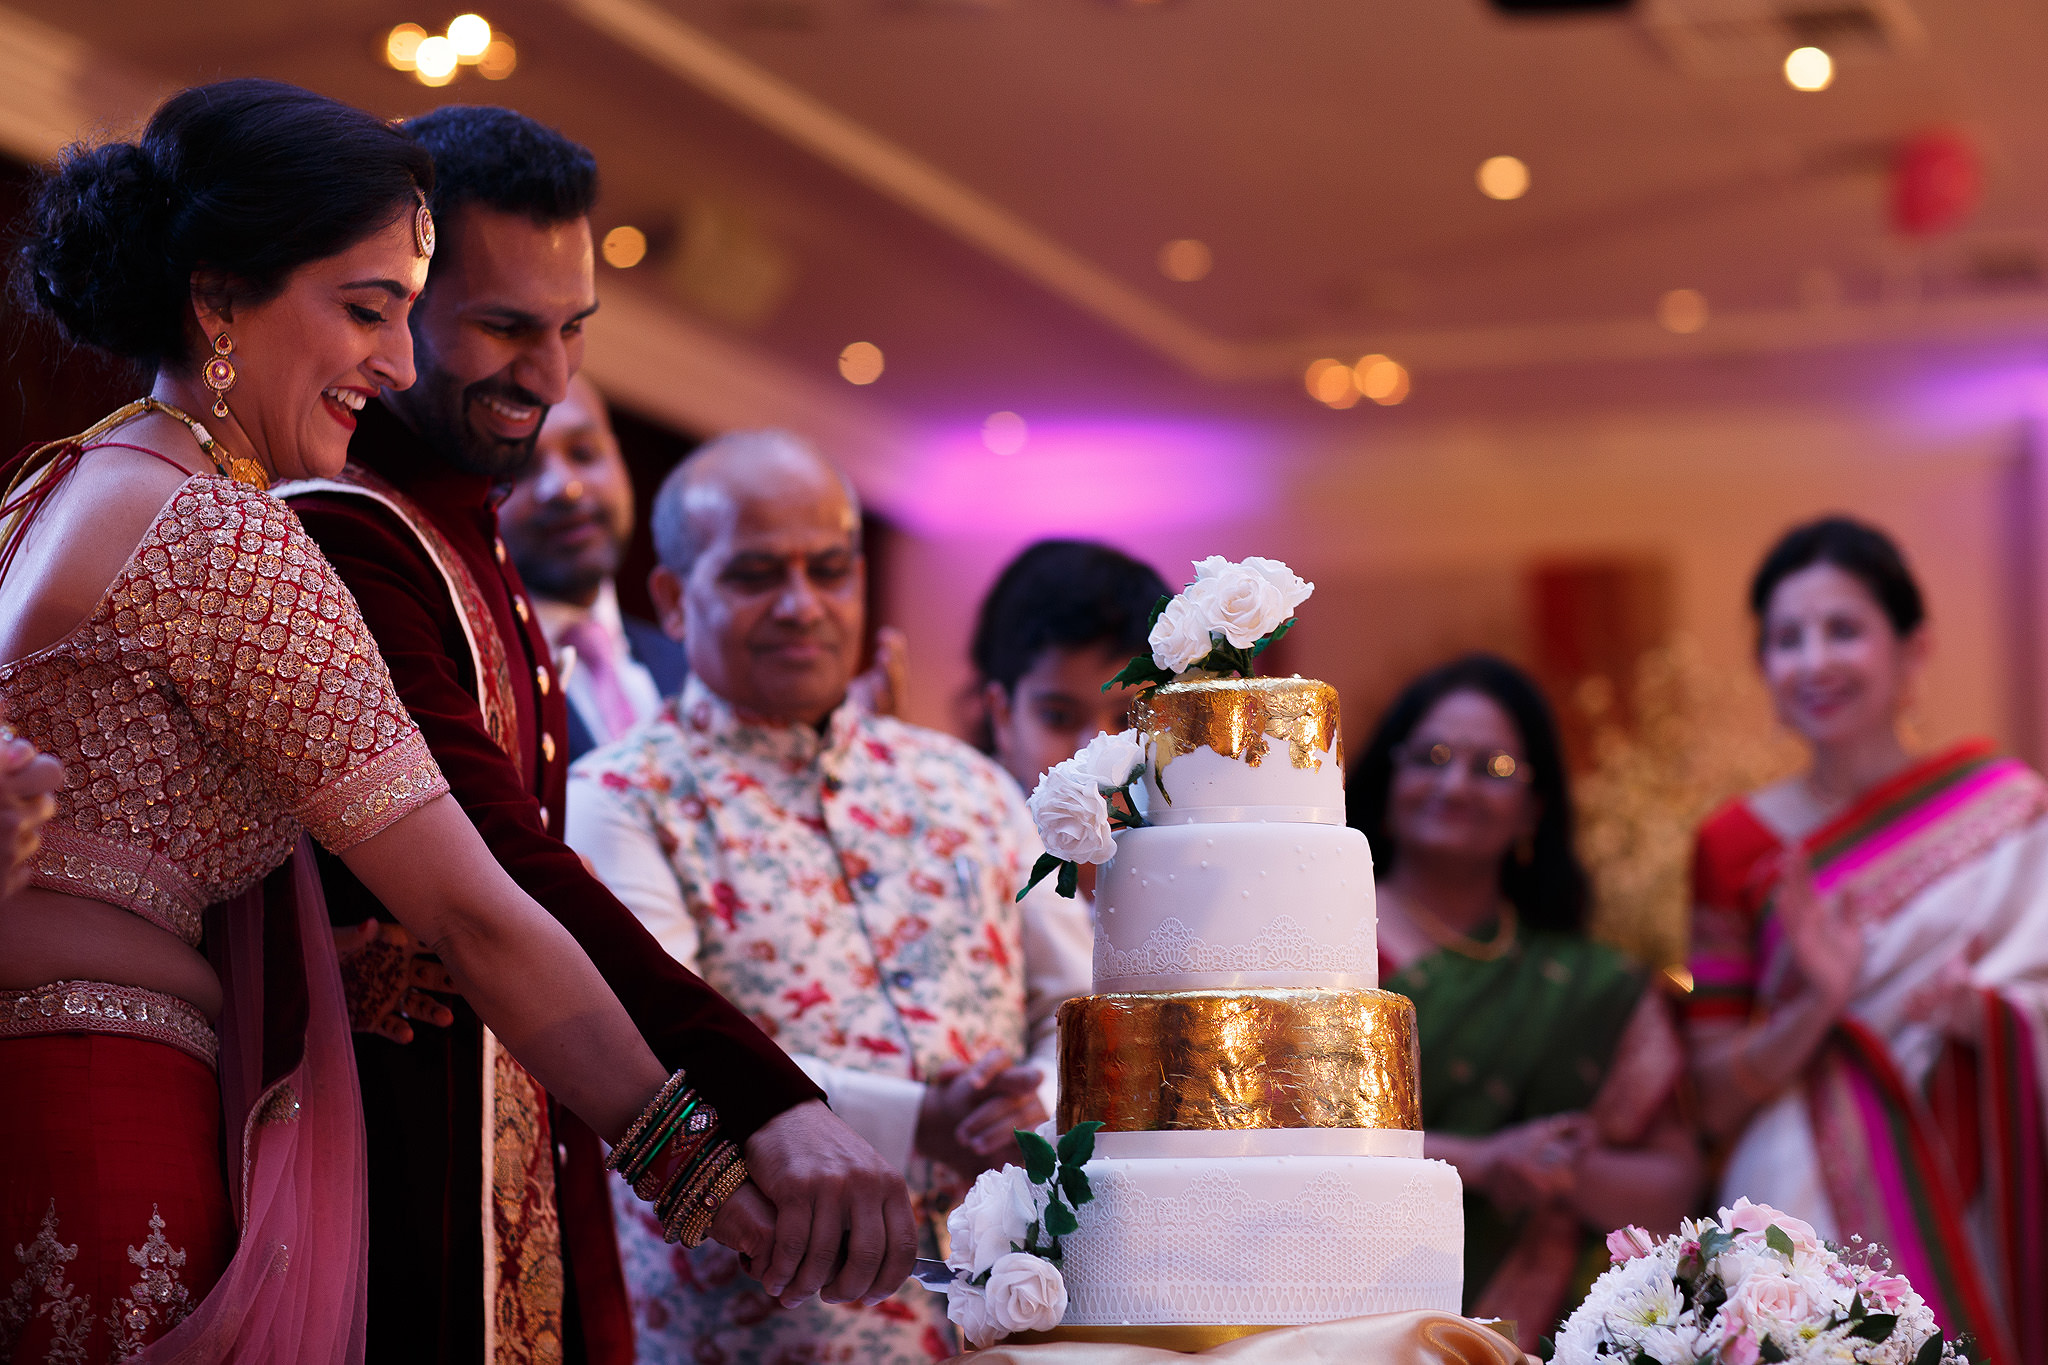 Indian bride and groom cutting the cake on the dancefloor